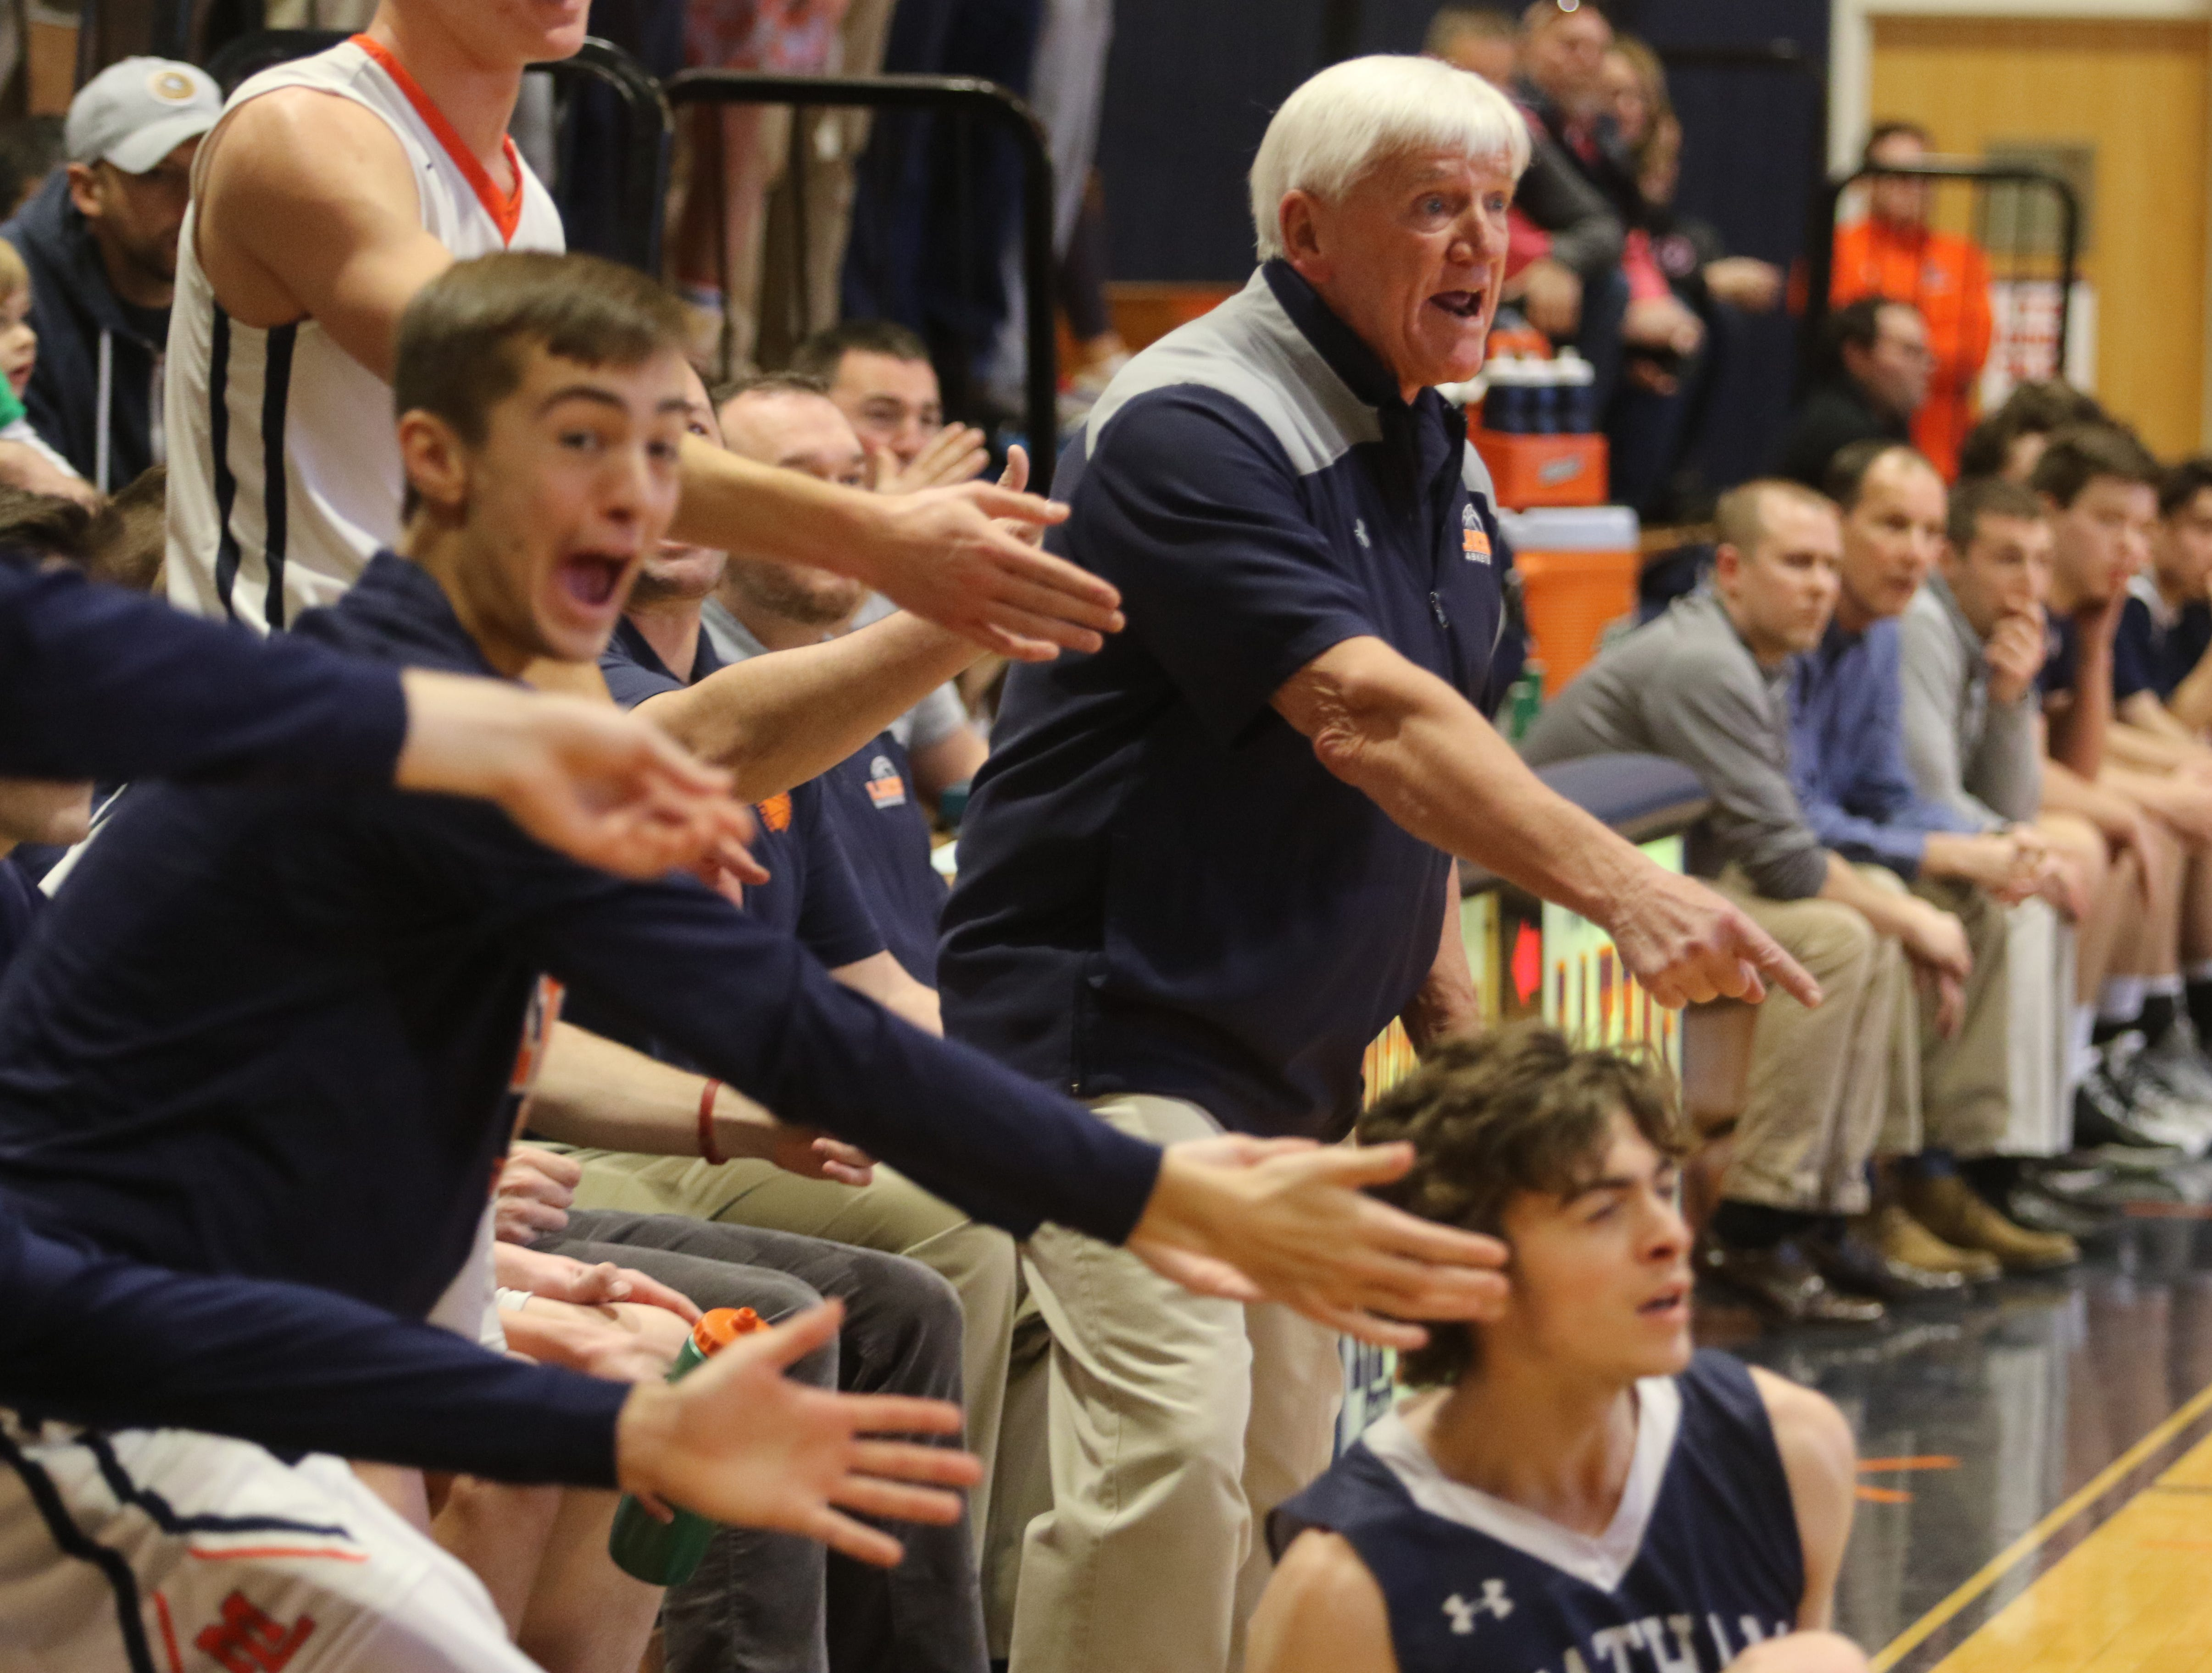 Mt. Lakes head coach John ByDook as he goes for his 500th career win.